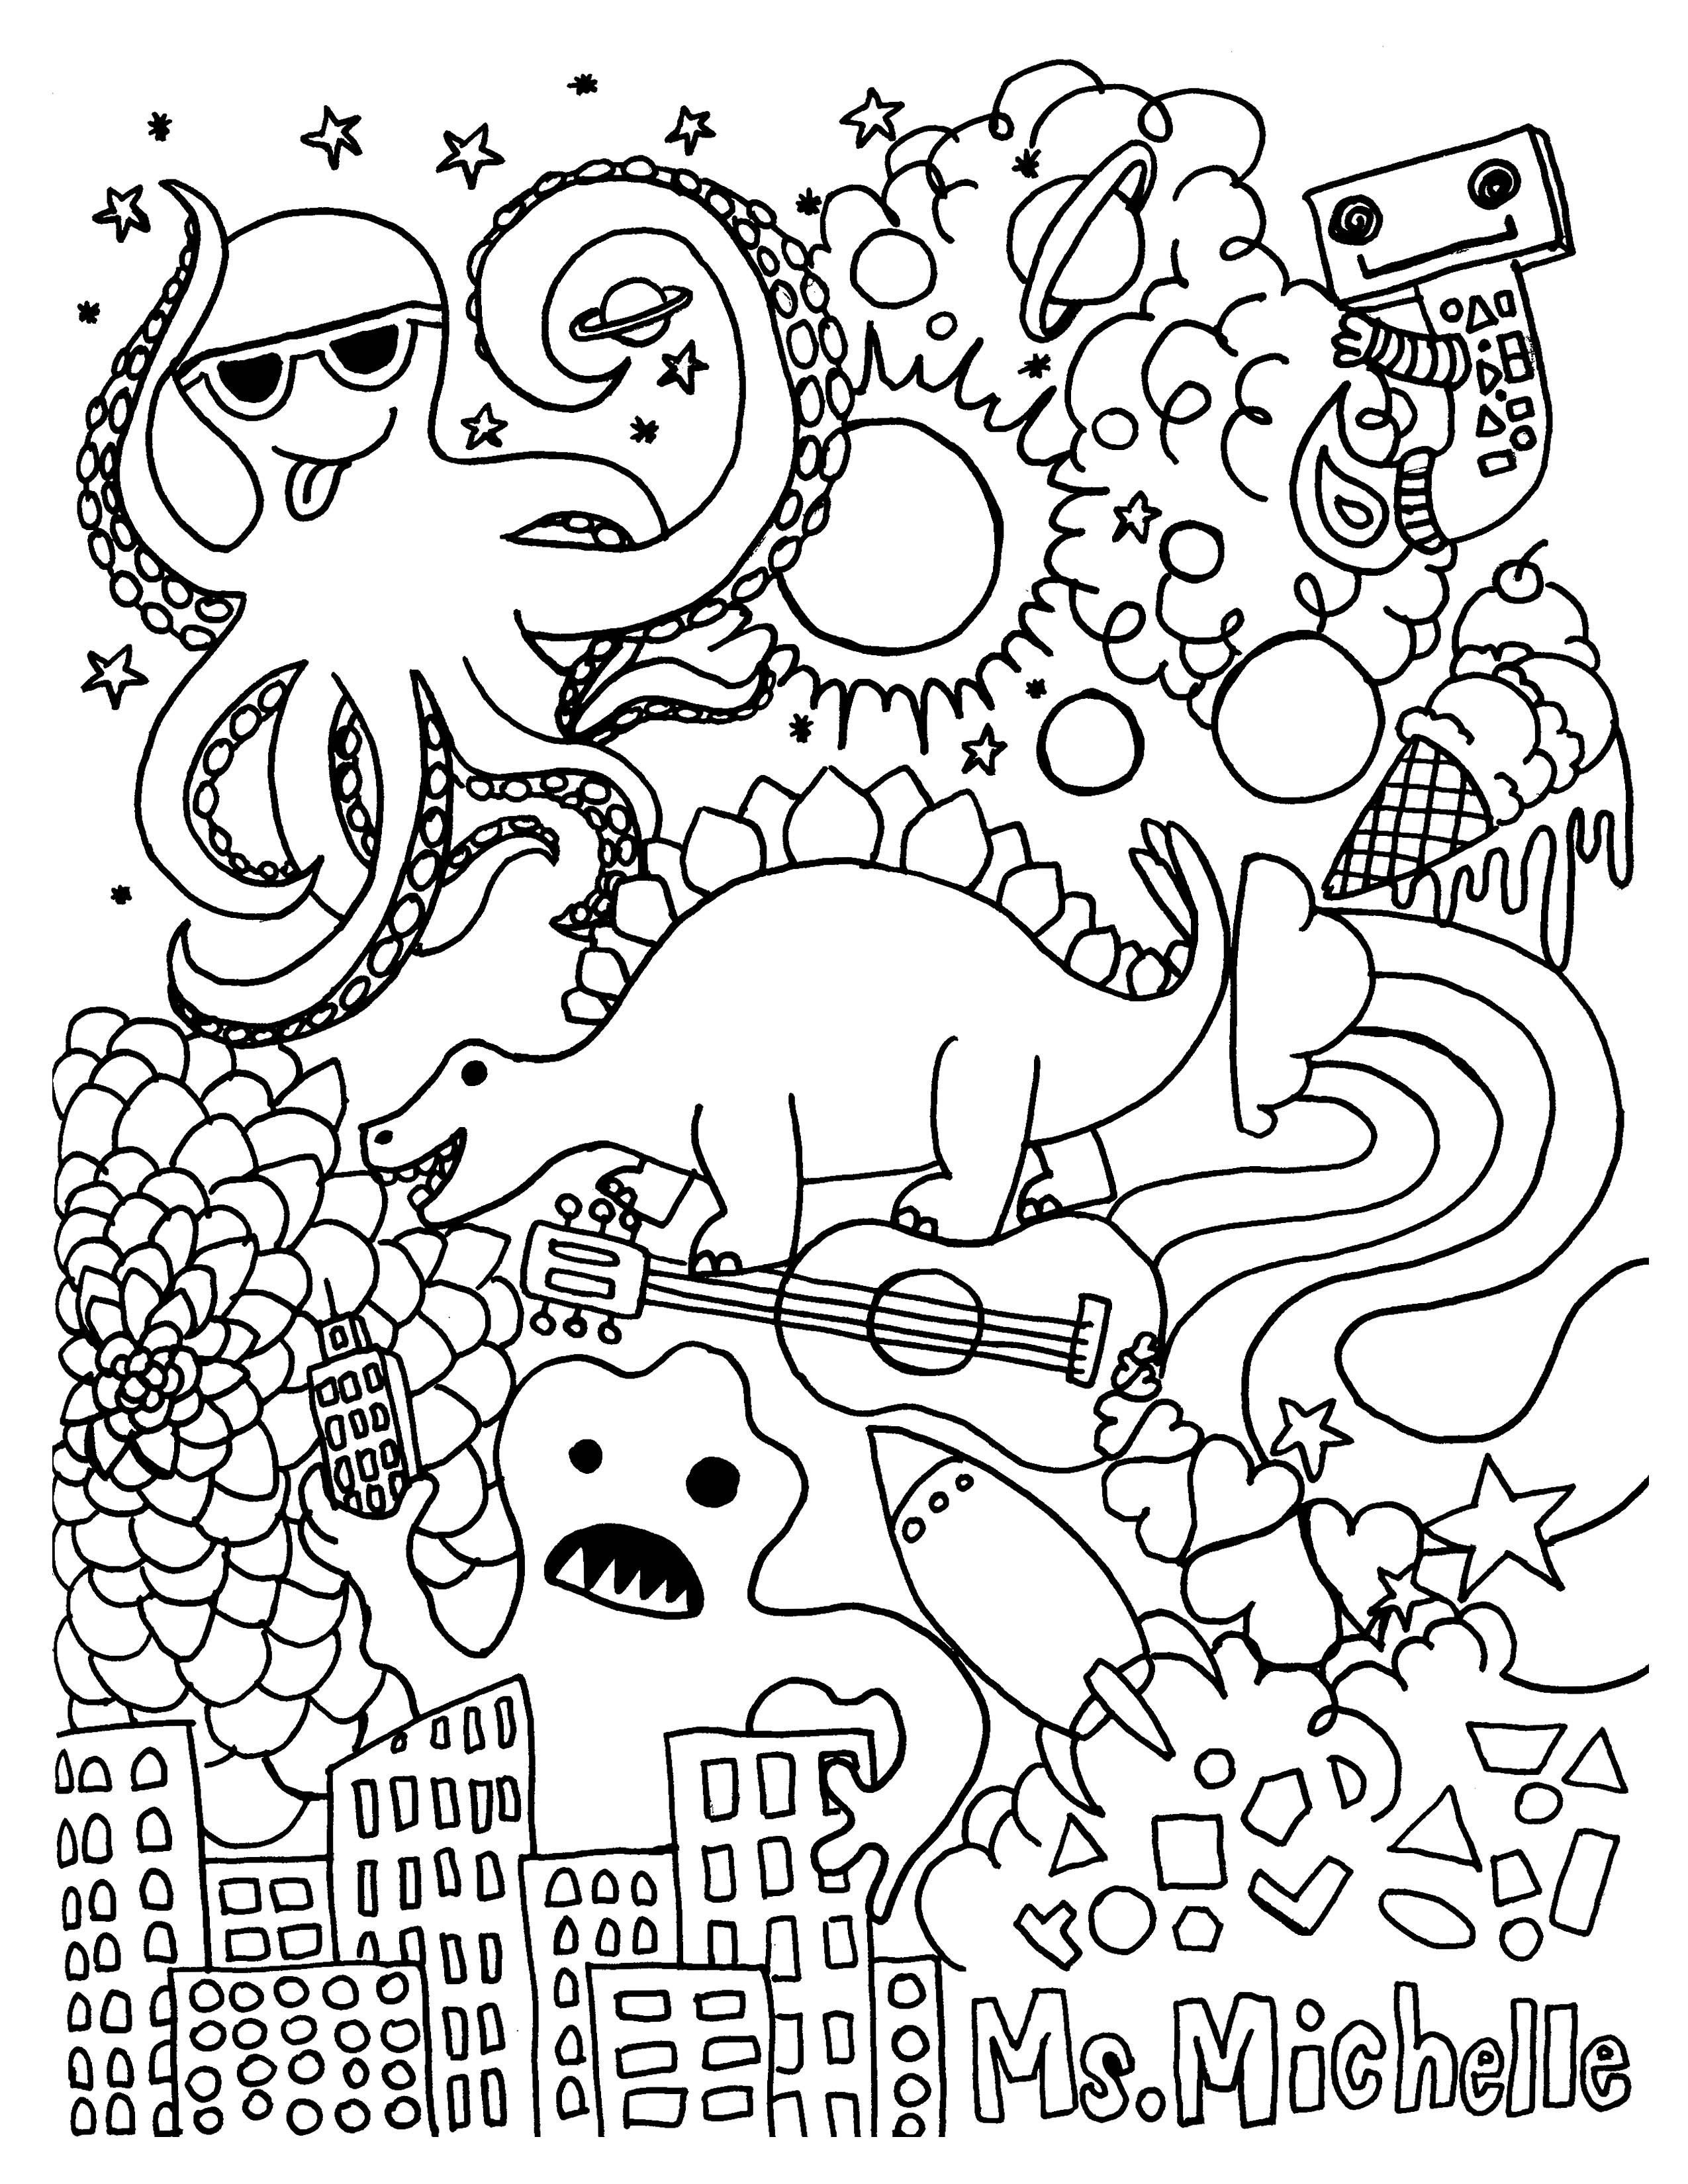 Turning Photos Into Coloring Pages Inspirational Coloring Turn